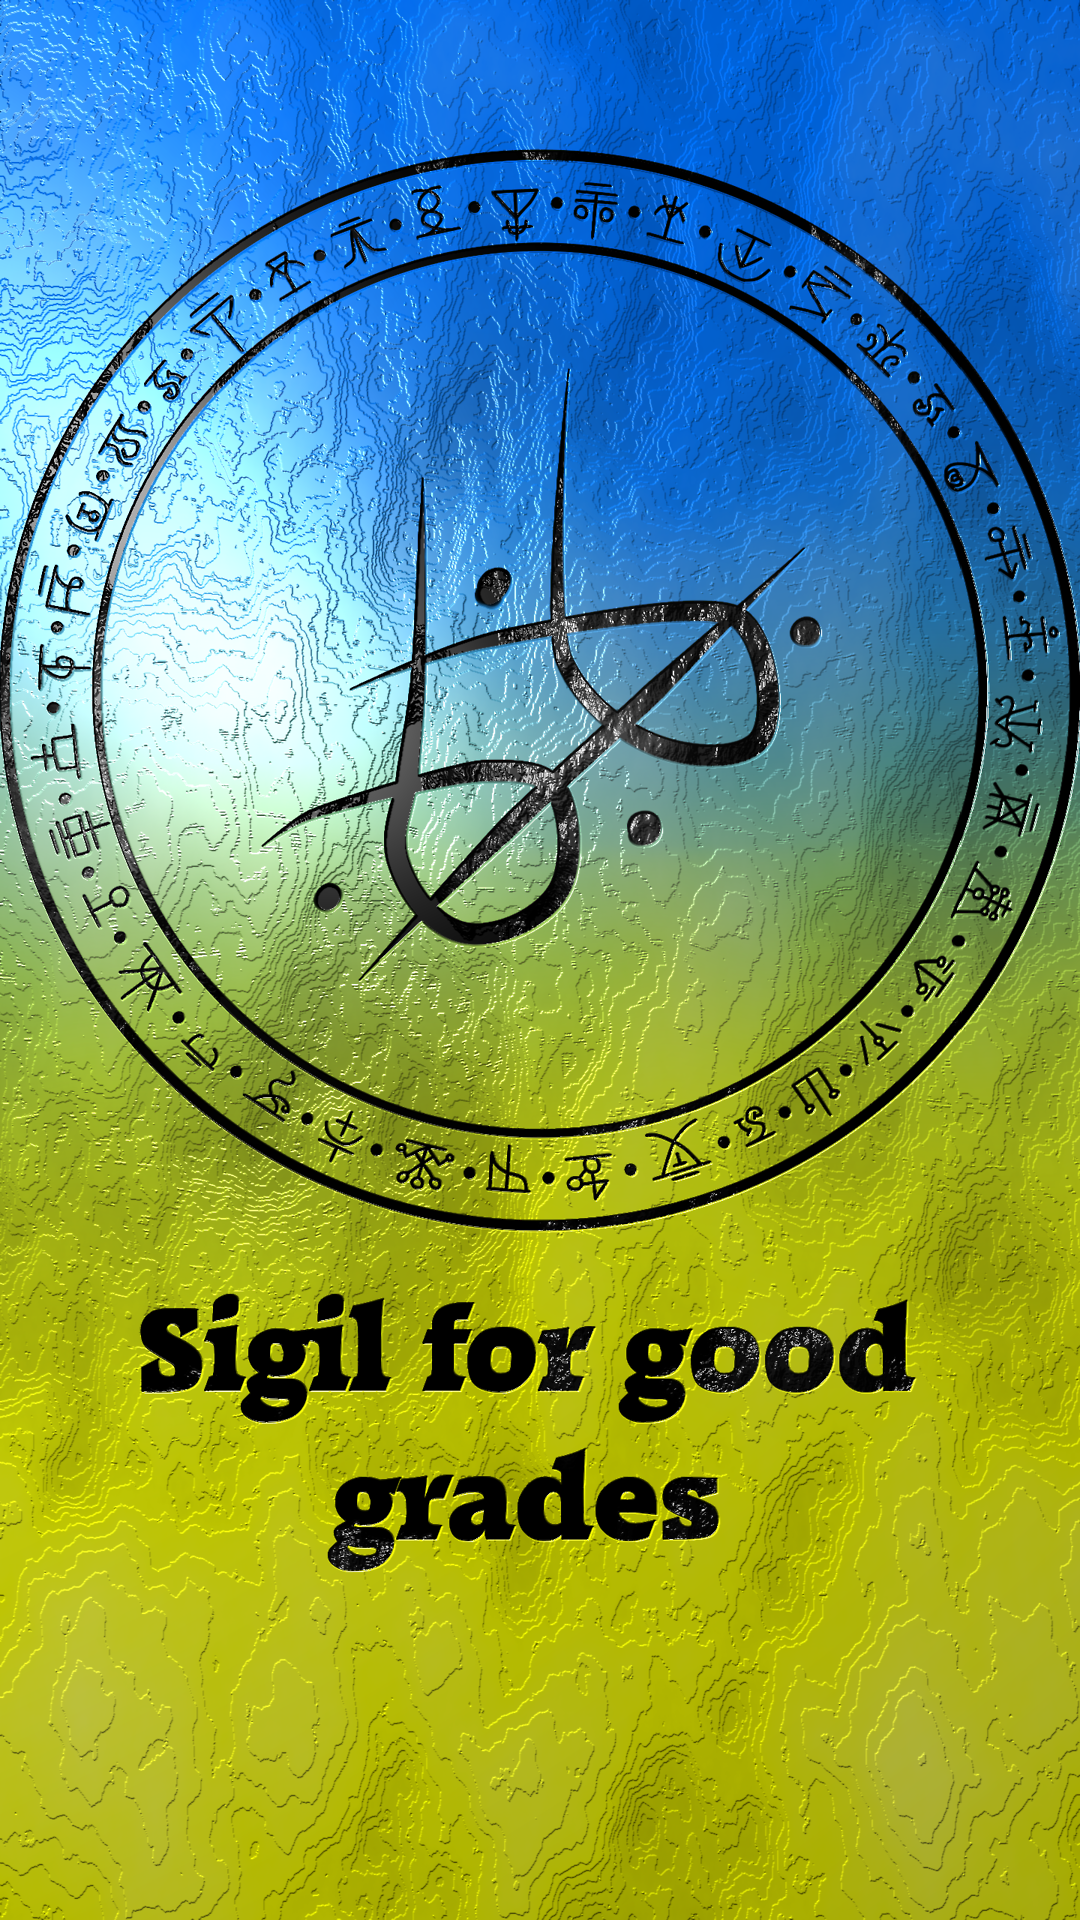 Sigil for good grades sigil requests are closed sigils sigil for good grades sigil requests are closed druid symbolswitchcraft biocorpaavc Choice Image